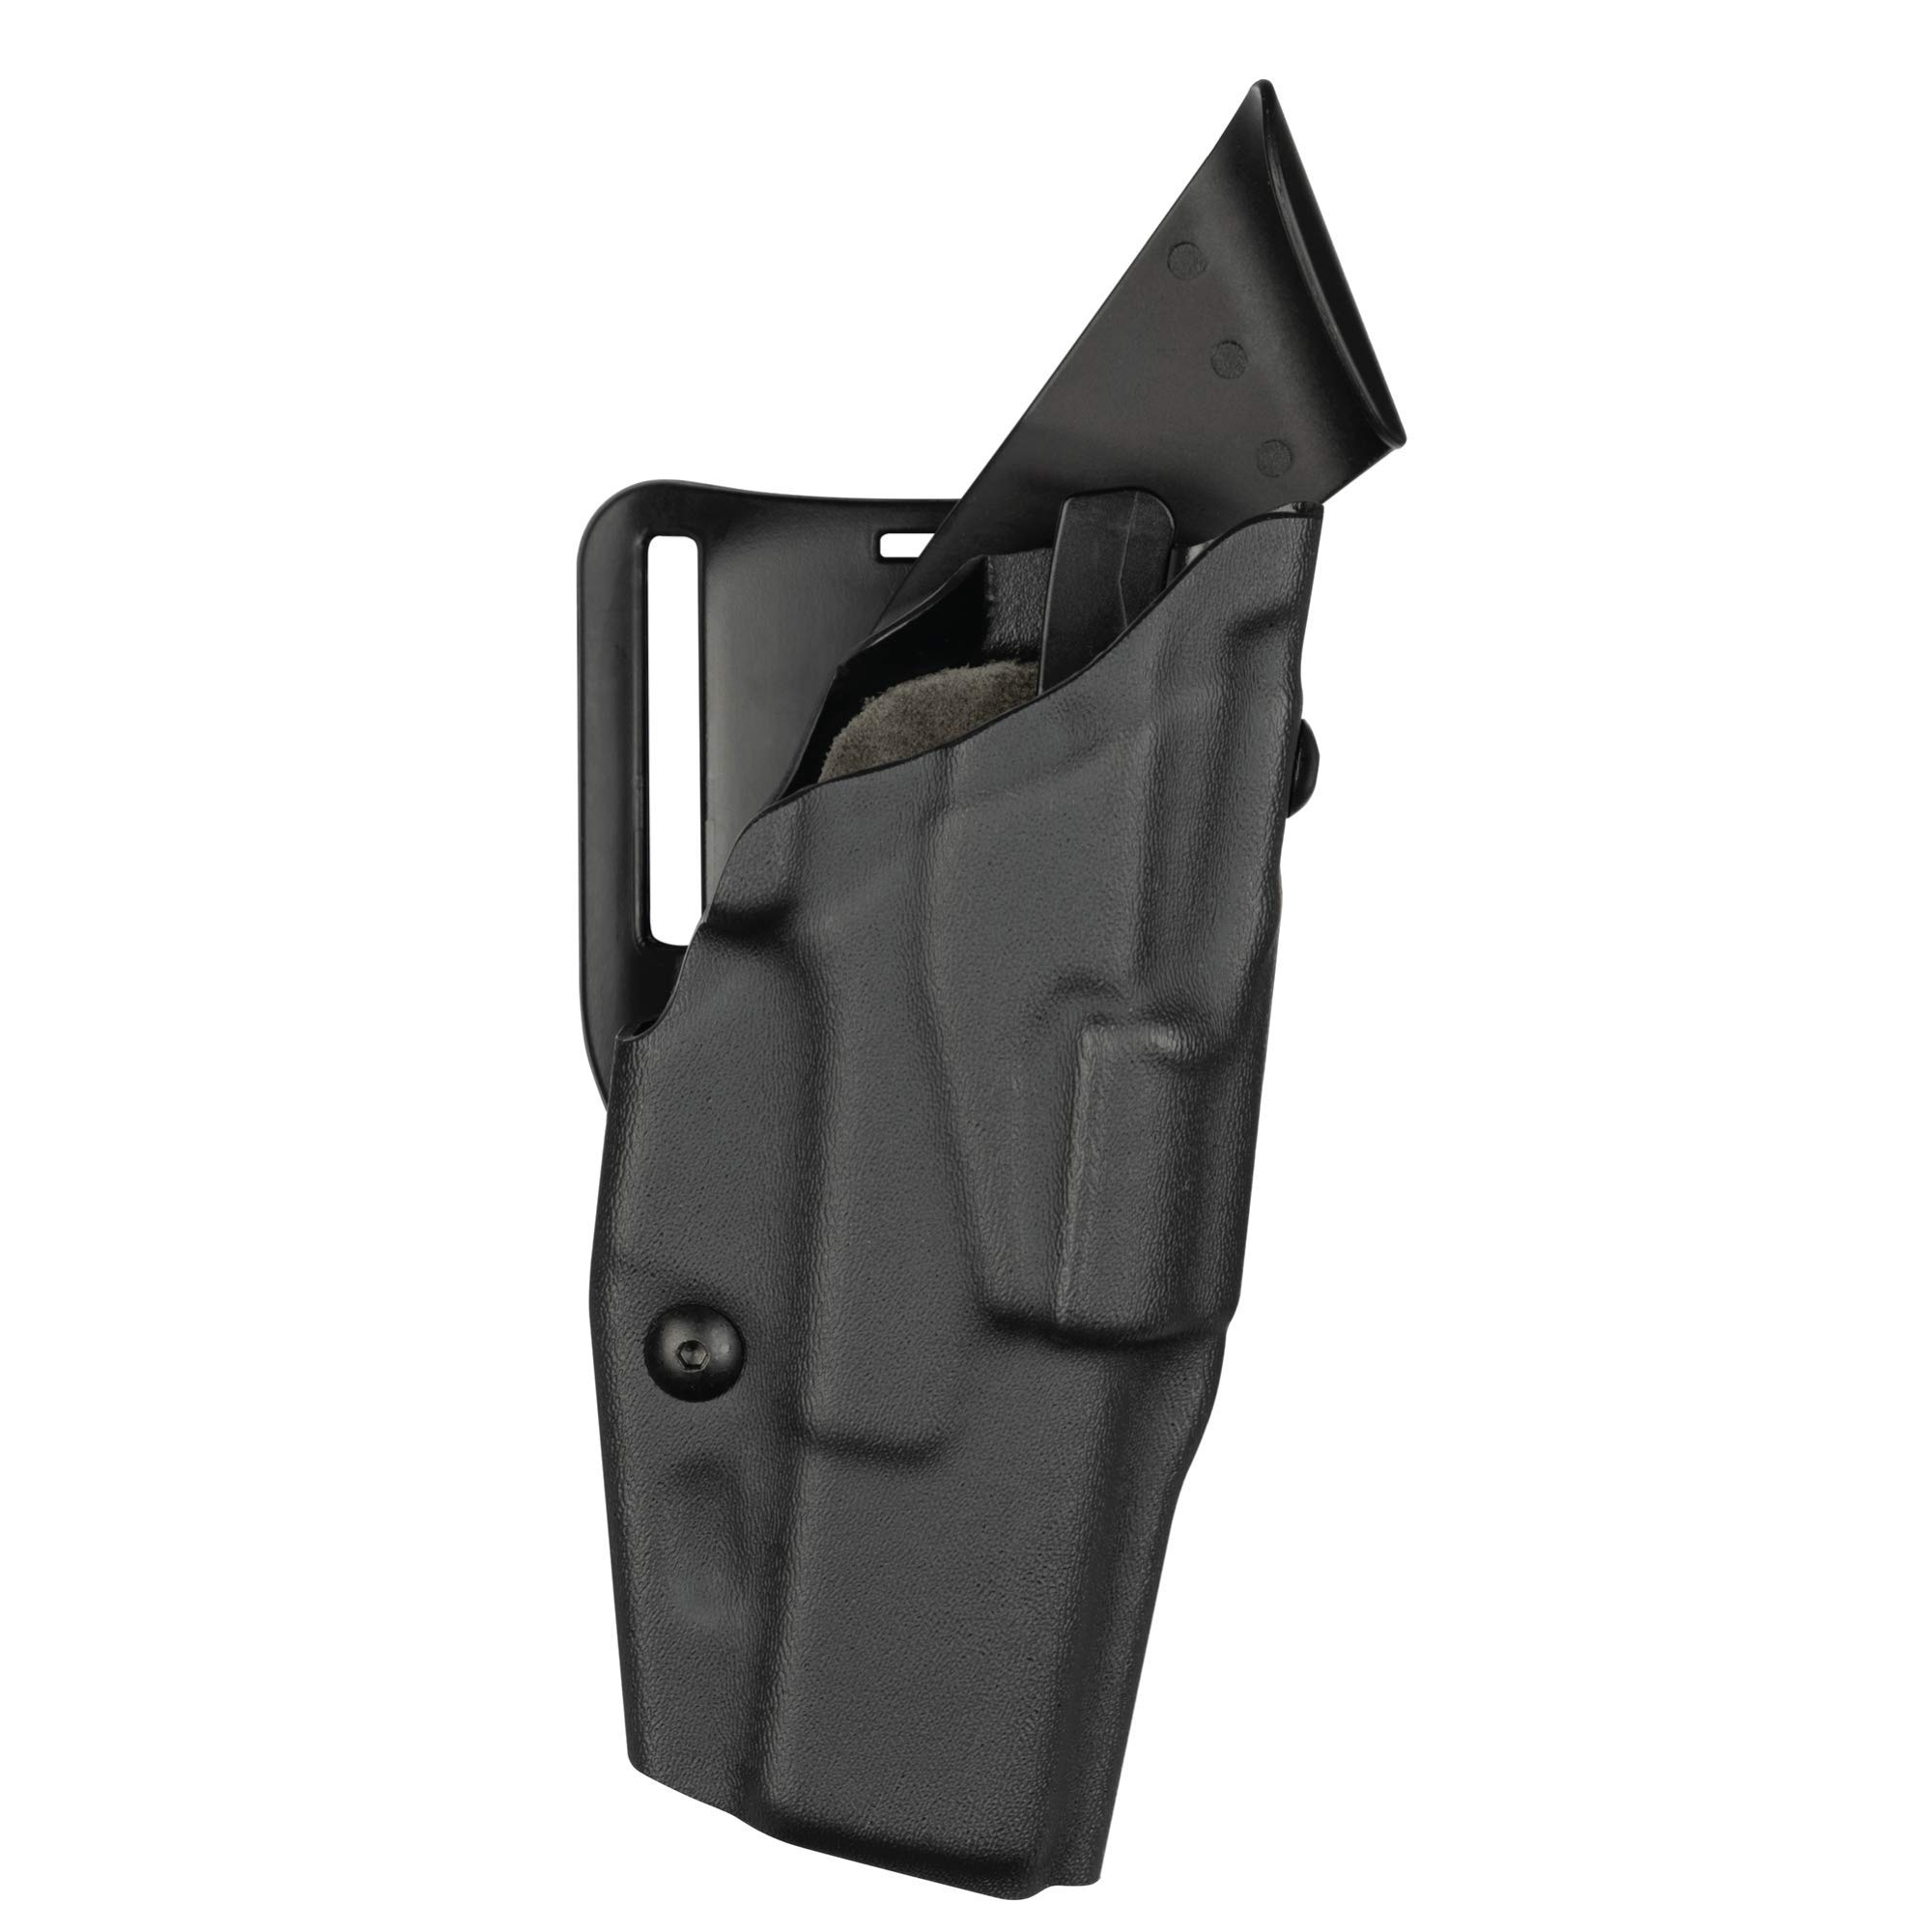 Safariland 6390: ALS, Level 1 Retention Duty Holster, Right Hand